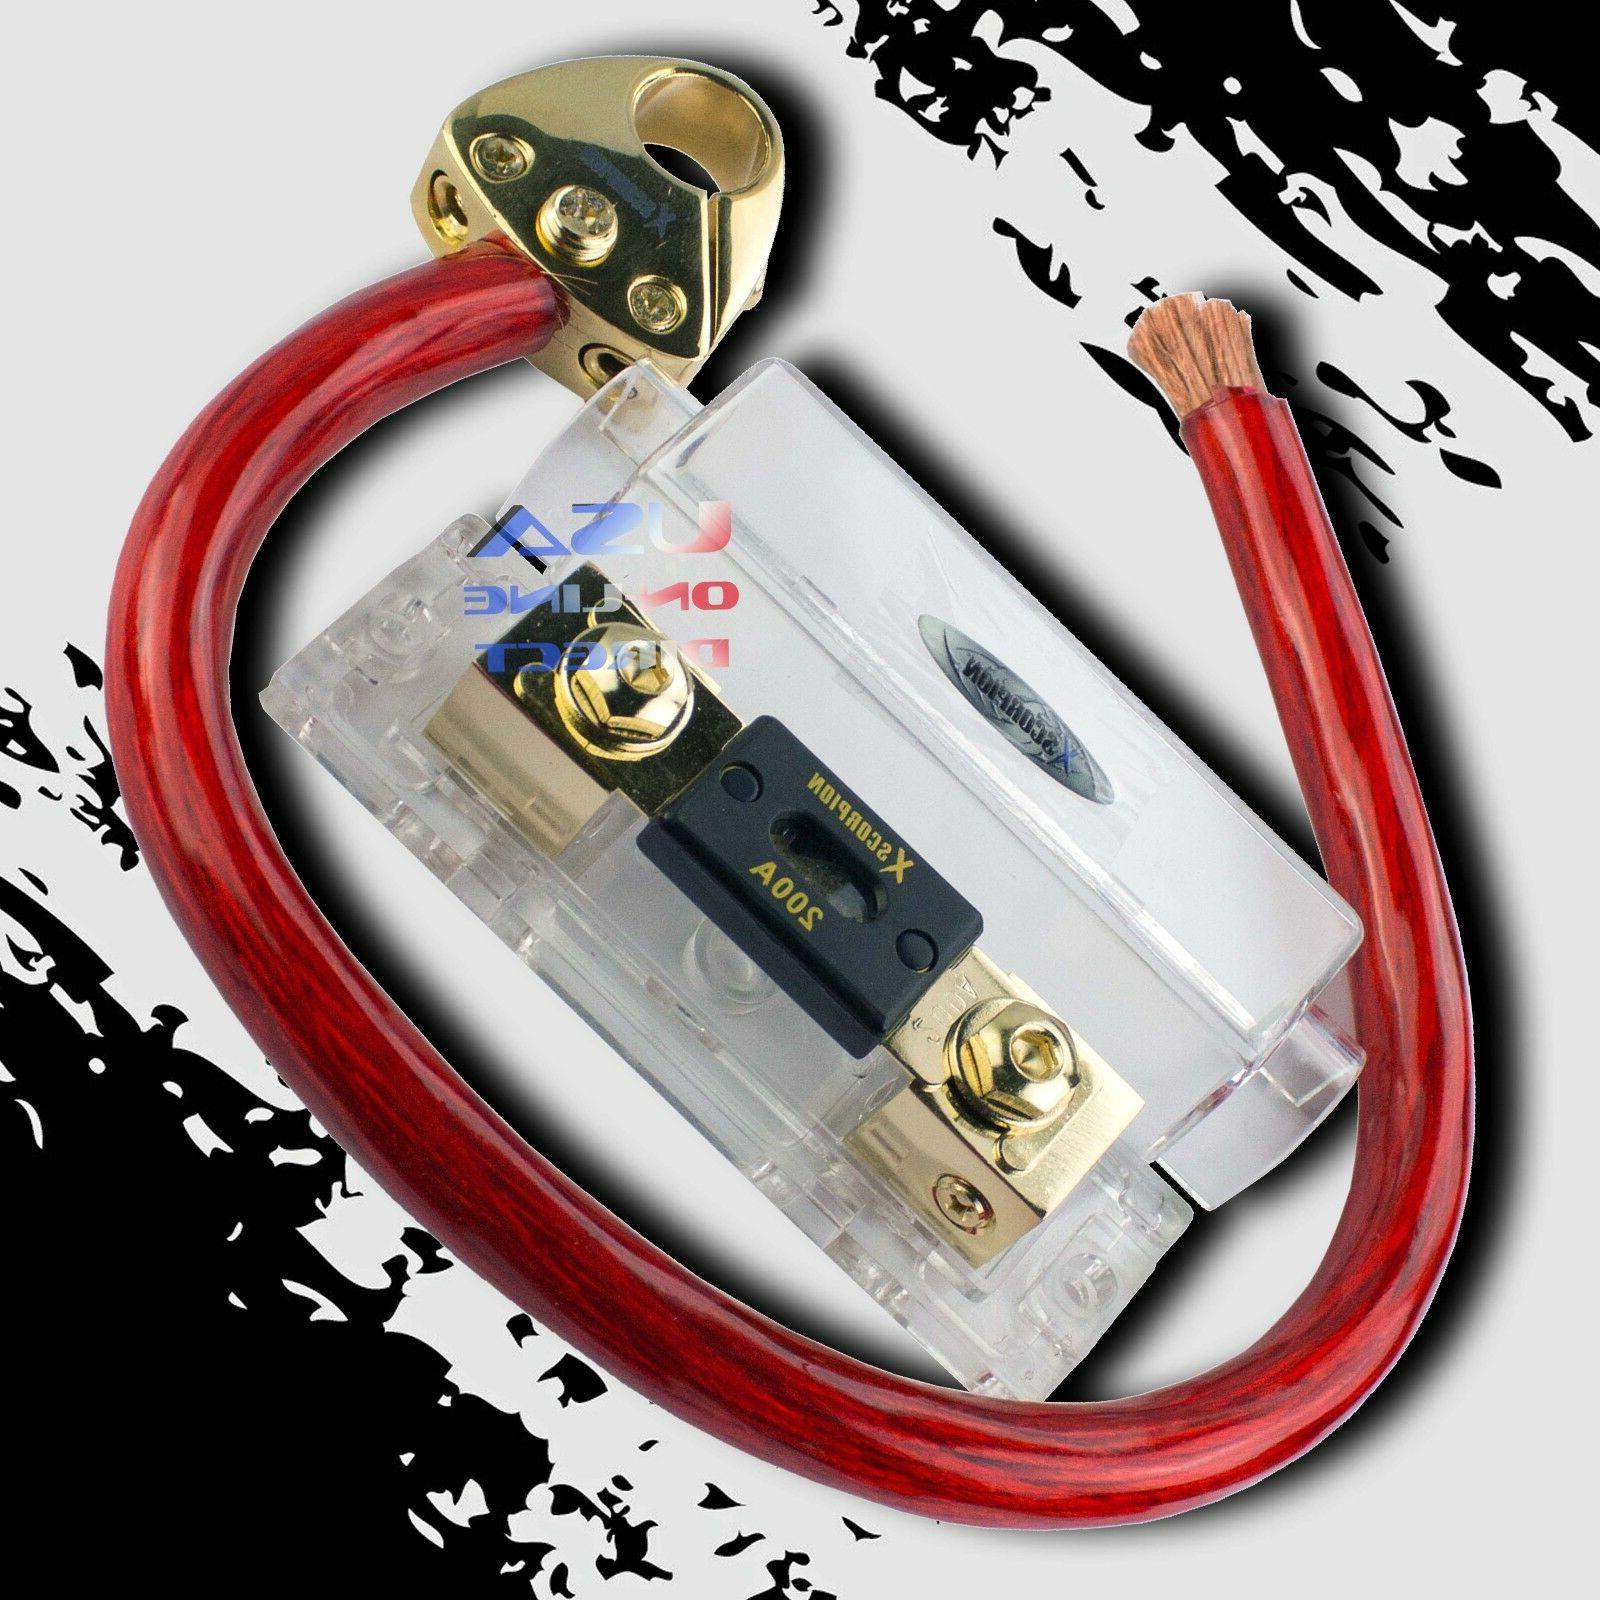 1 0 gauge awg ofc wire kit